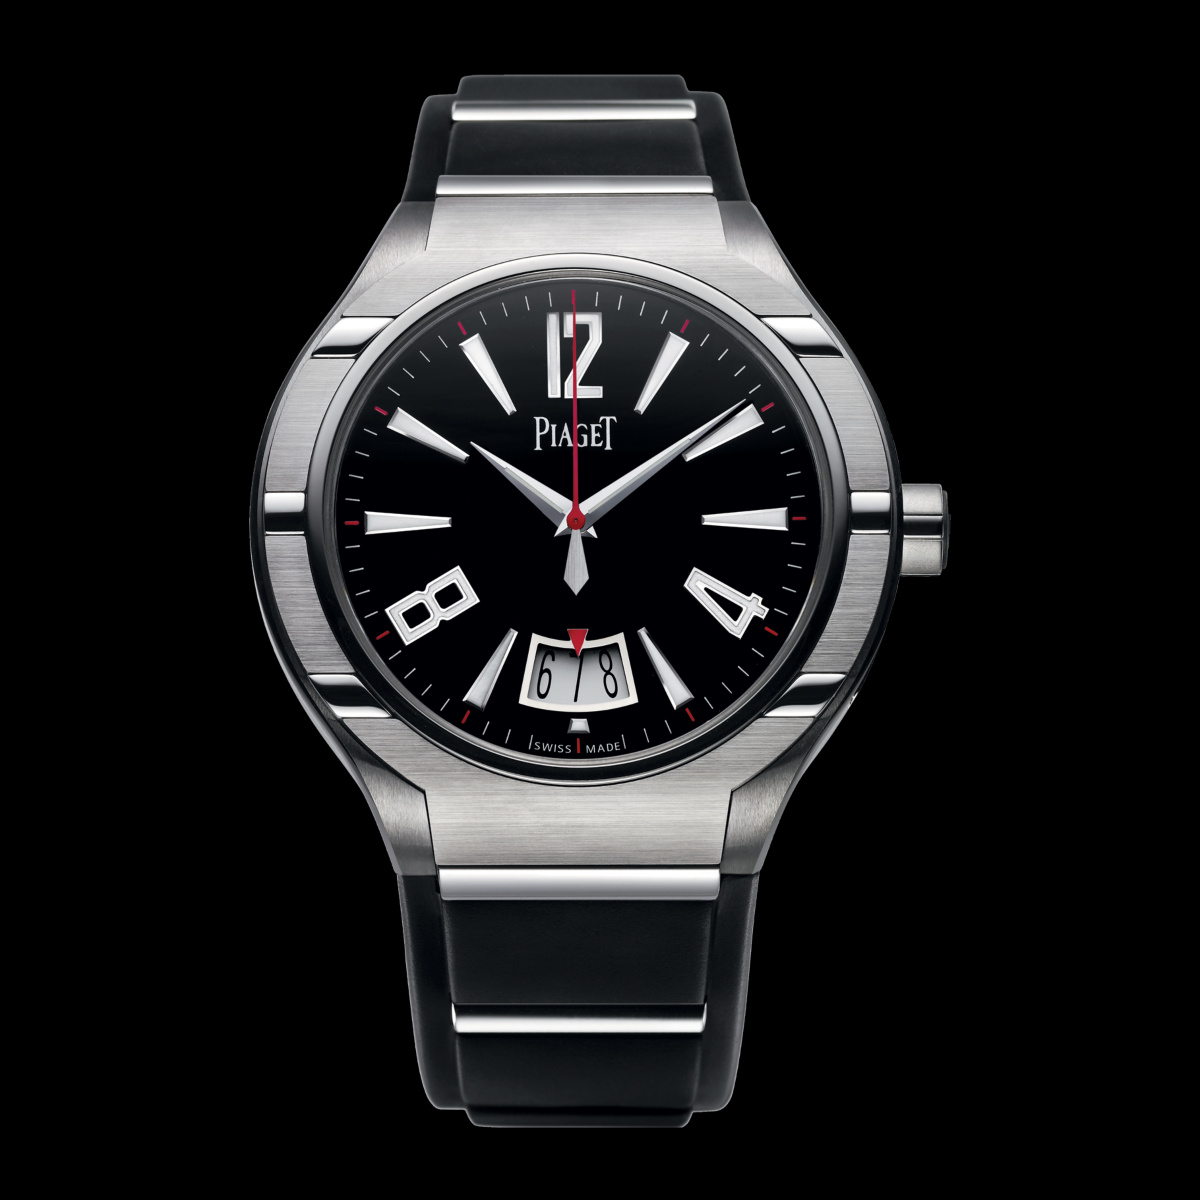 PIAGET POLO FORTYFIVE WATCH black dial